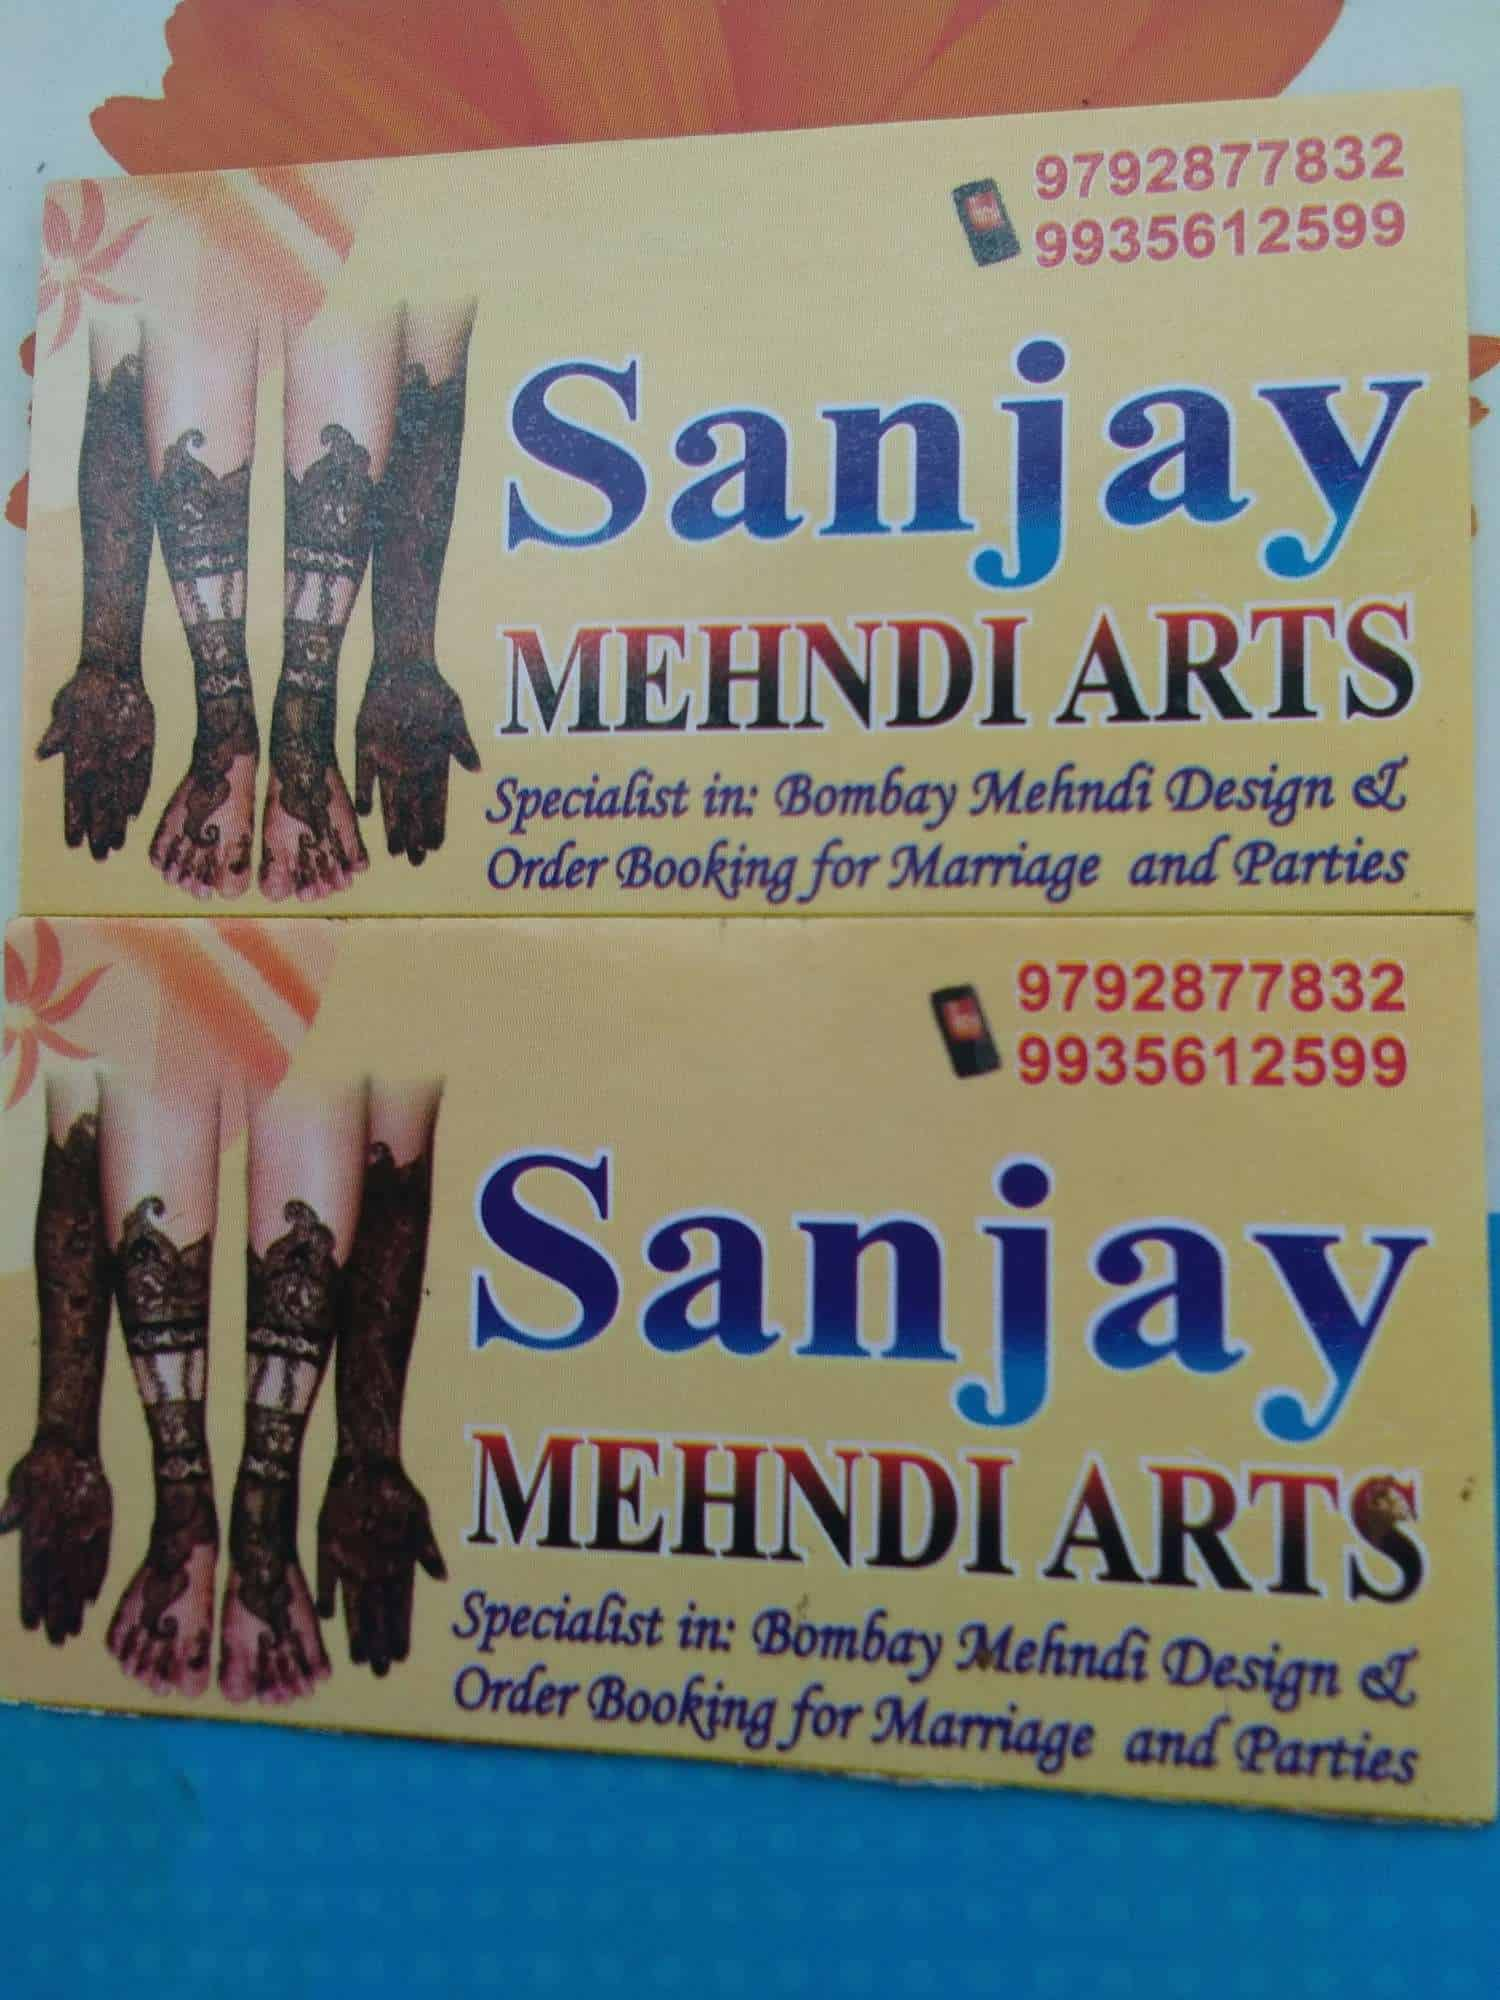 Sanjay Mehndi Arts Photos Civil Lines Allahabad Pictures Images